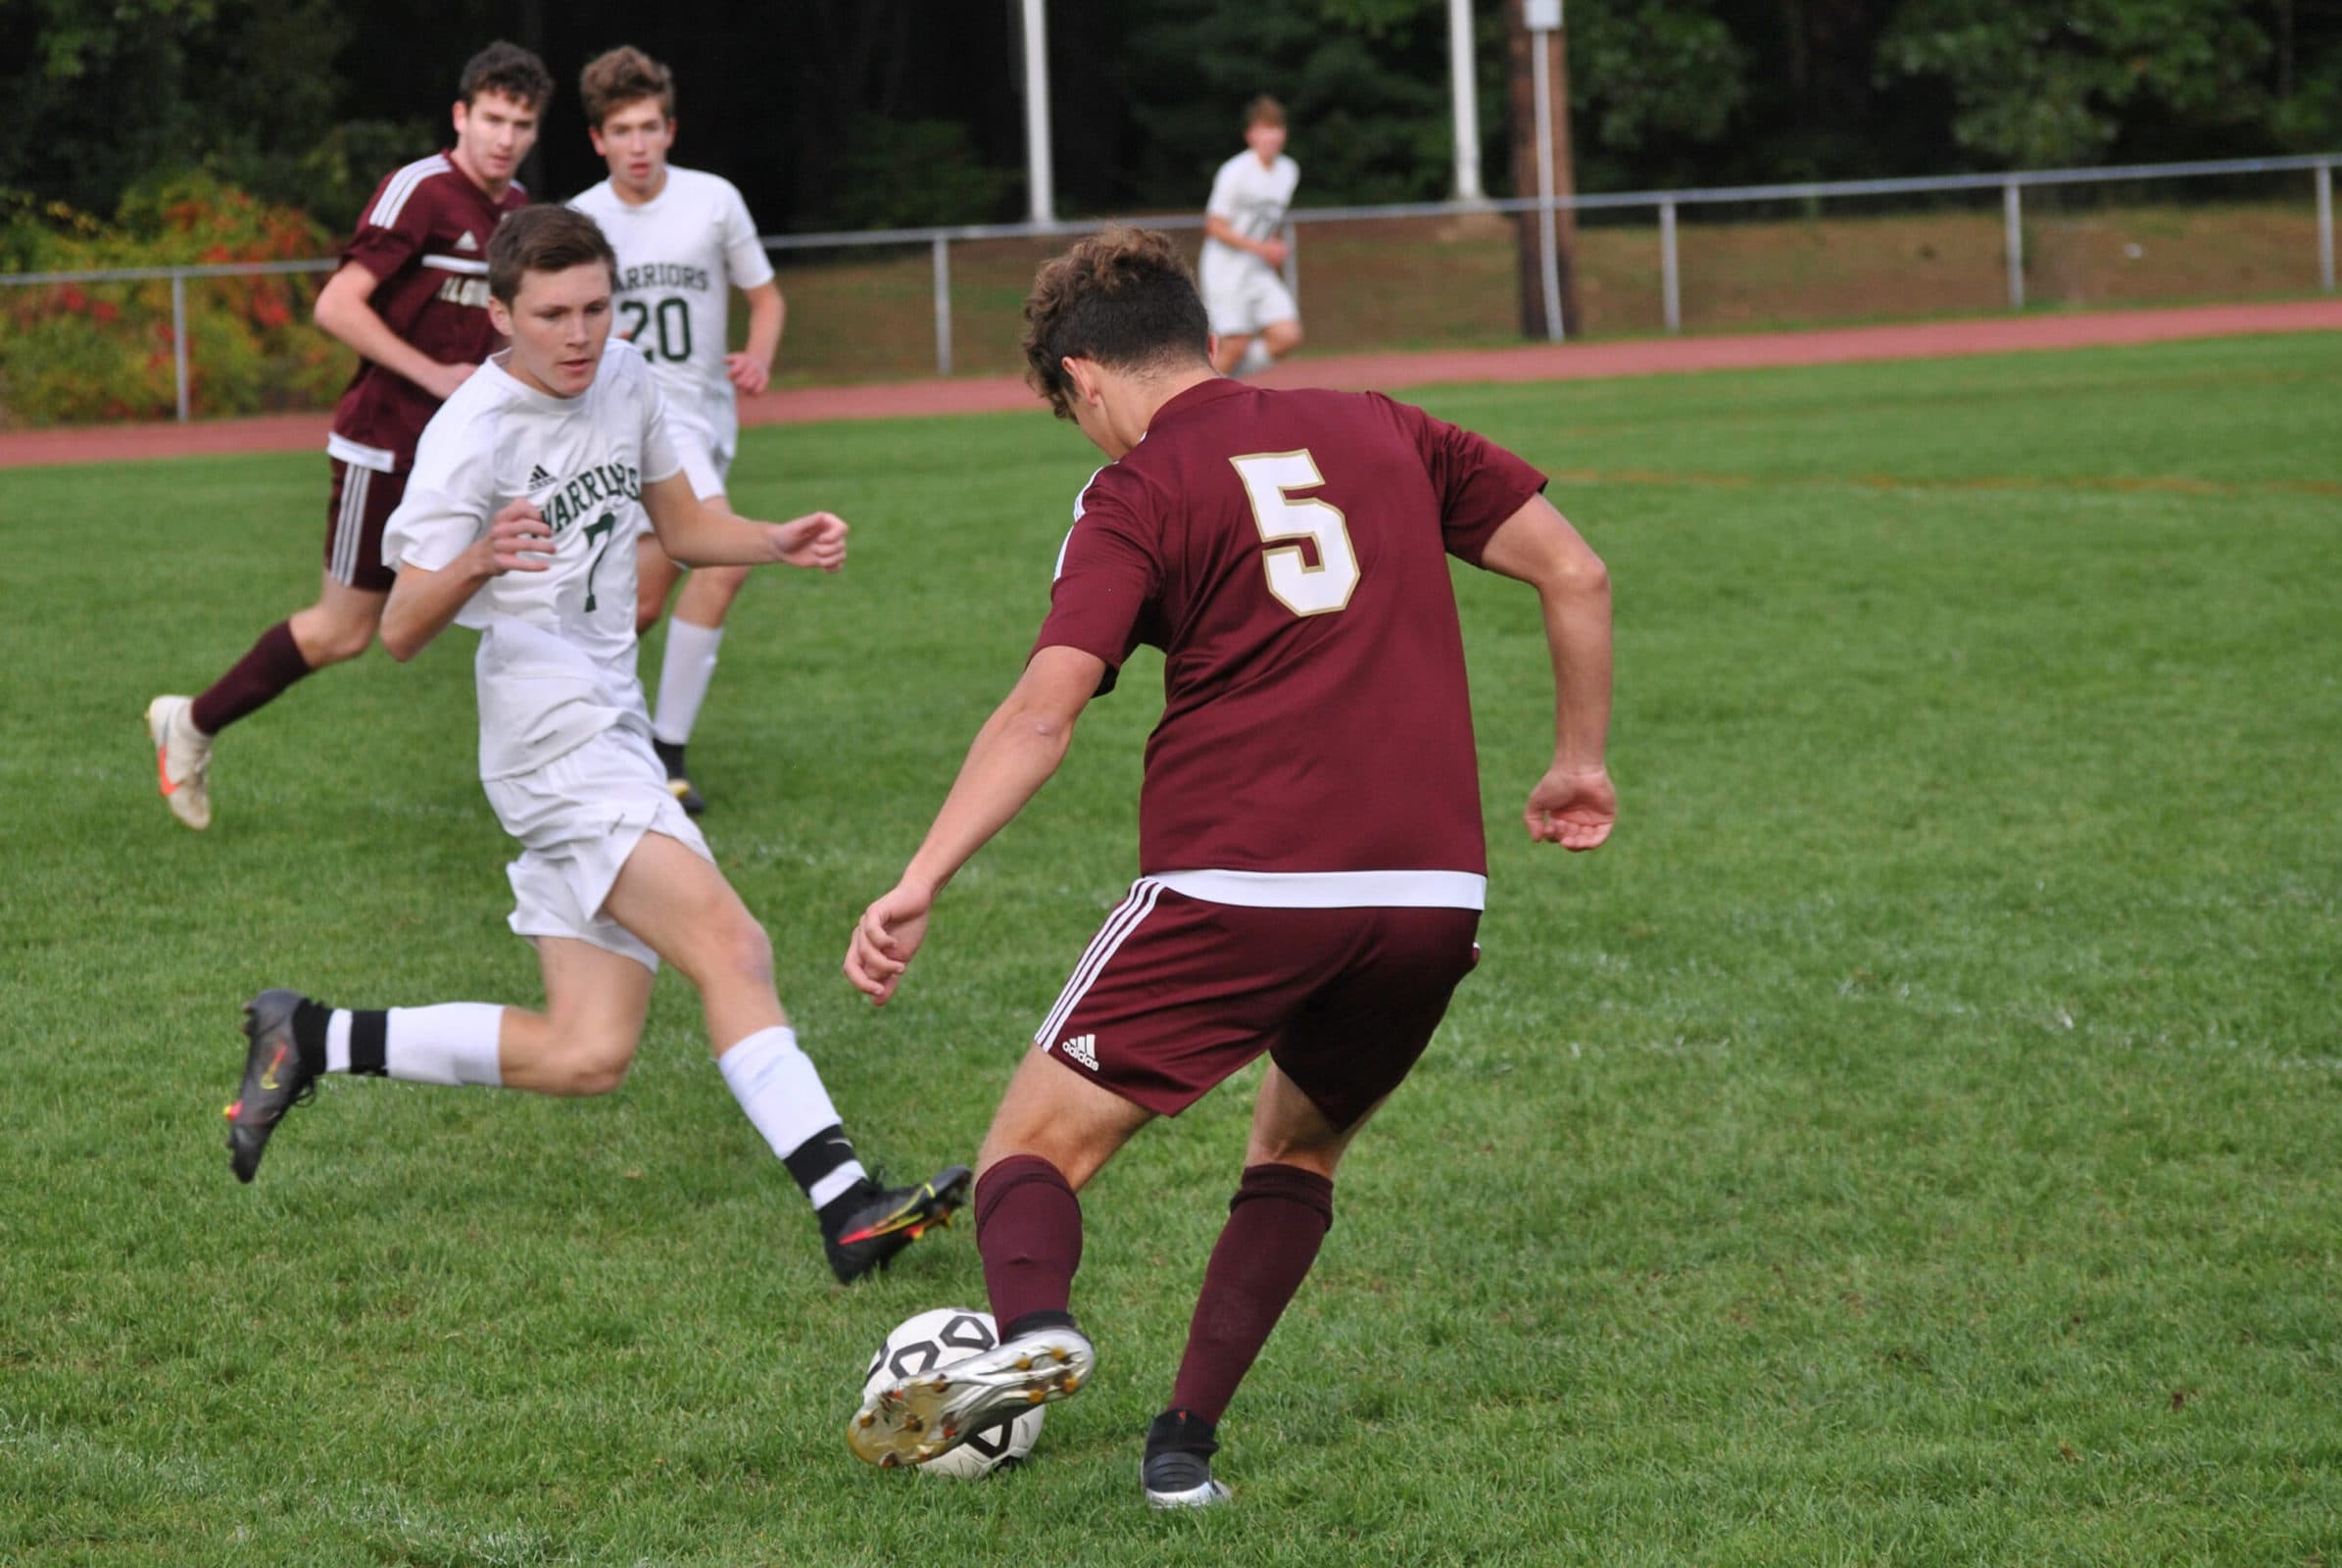 Algonquin's Jeremy Strauss passes the ball into open space ahead of a teammate as he is pursued by a Tantasqua opponent.